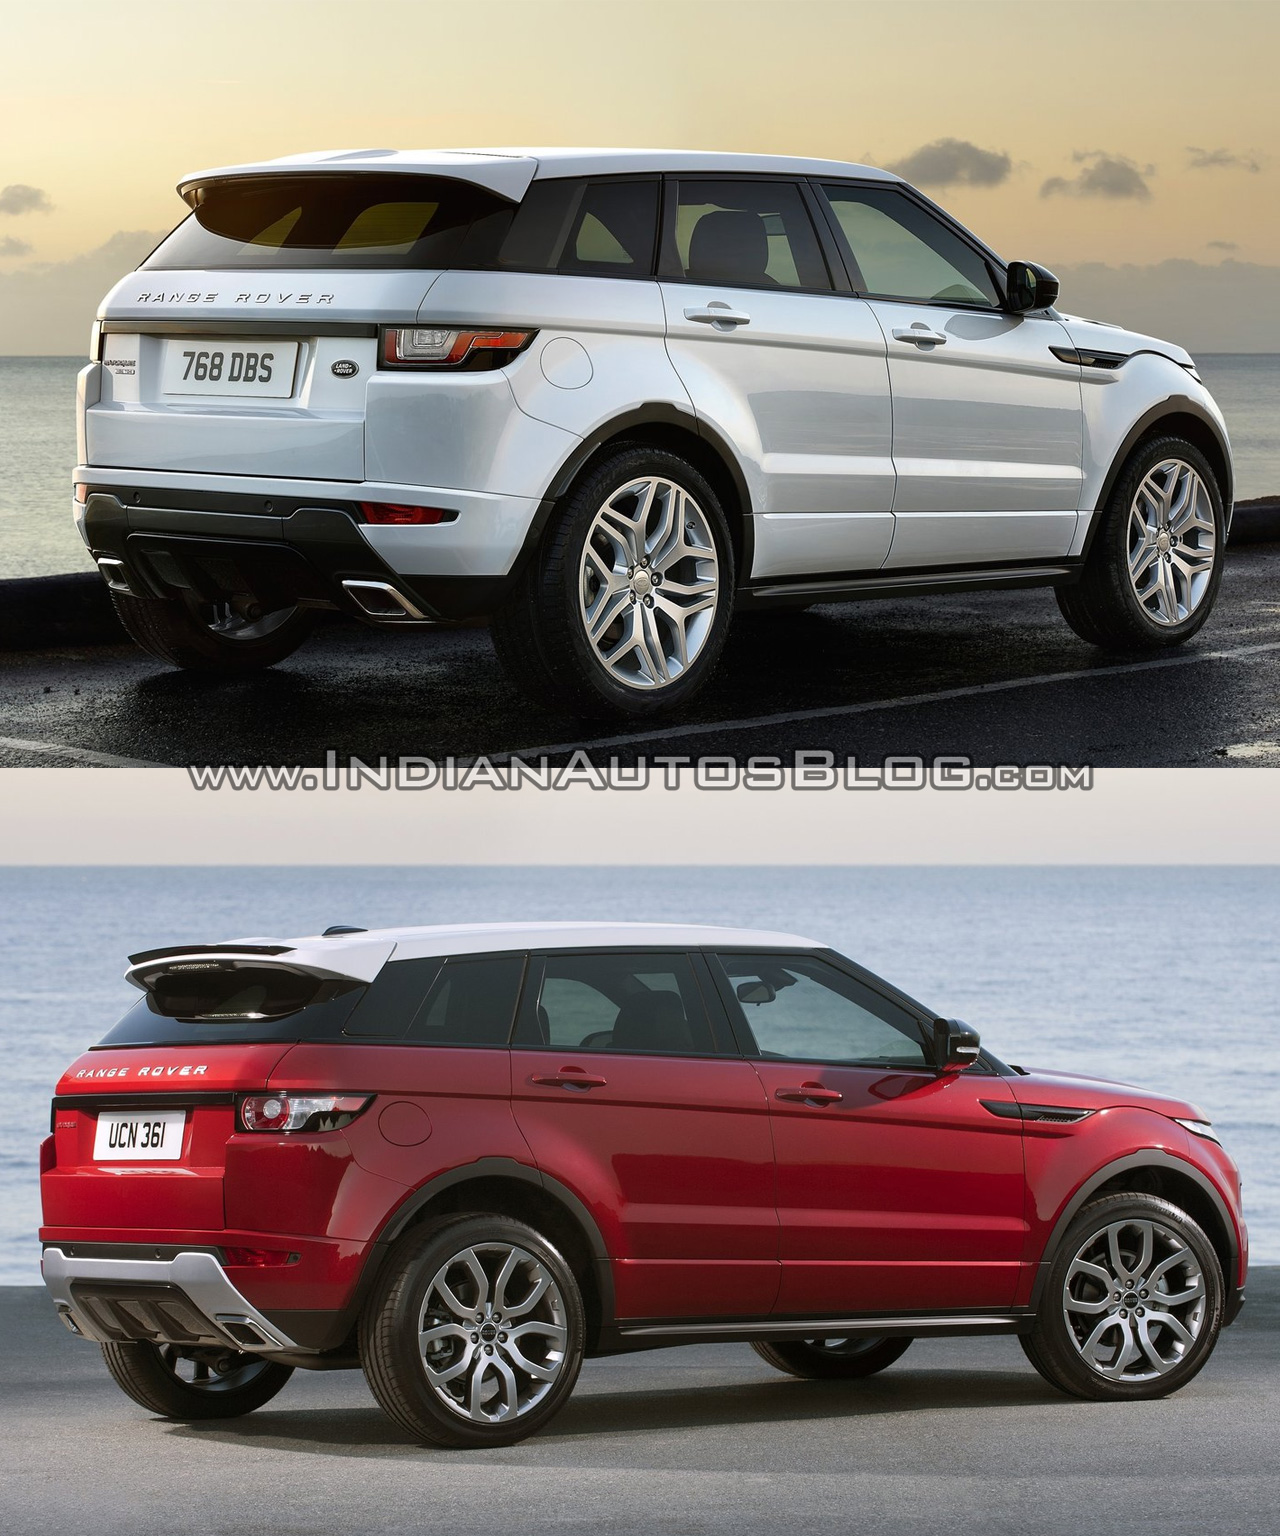 Land Rover Vs Range Rover 2016 Range Rover Evoque Facelift Vs 2015 Evoque Old Vs New